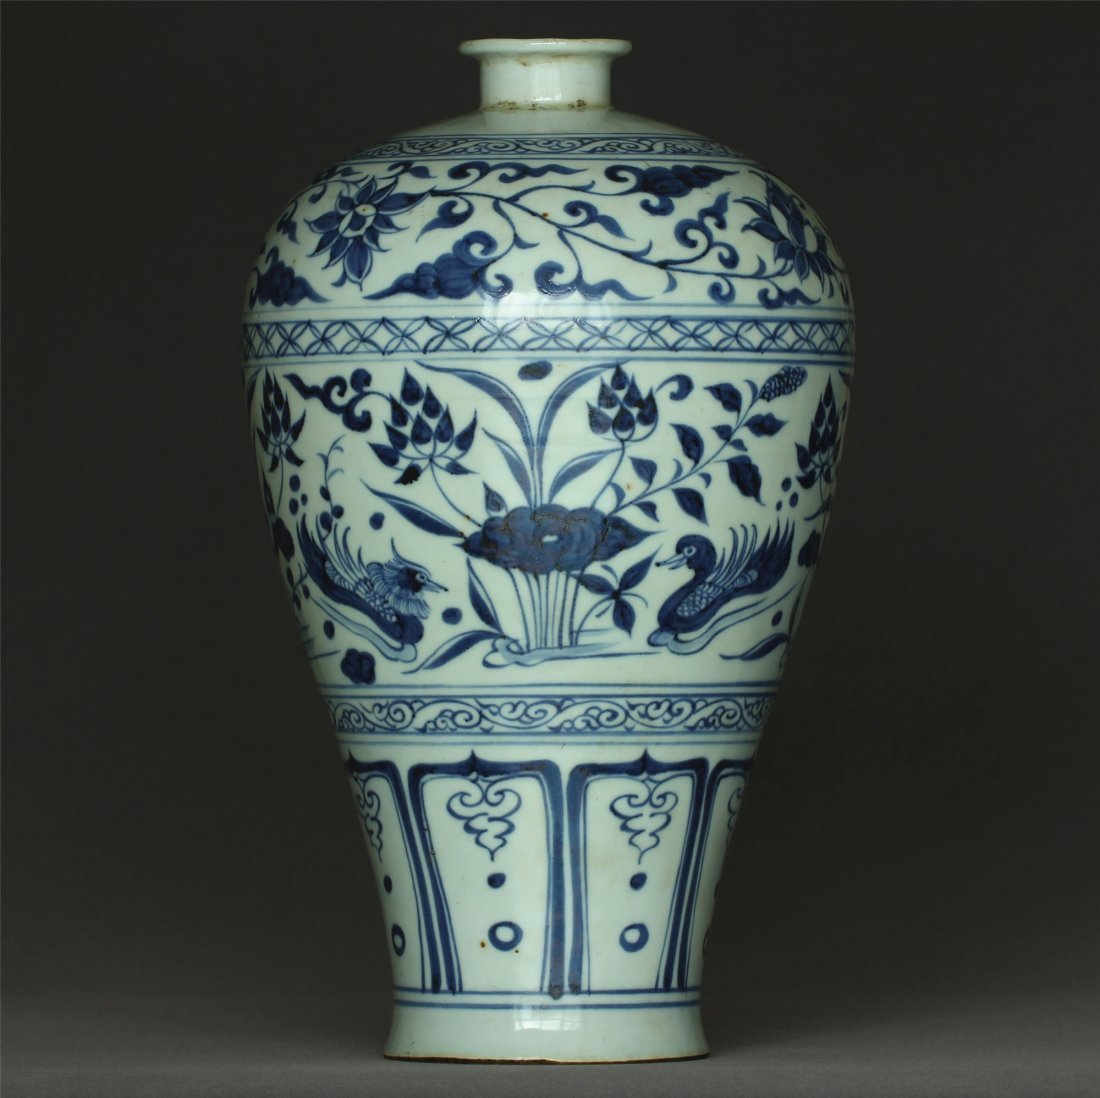 And white porcelain vase yuan dynasty blue and white porcelain vase yuan dynasty reviewsmspy